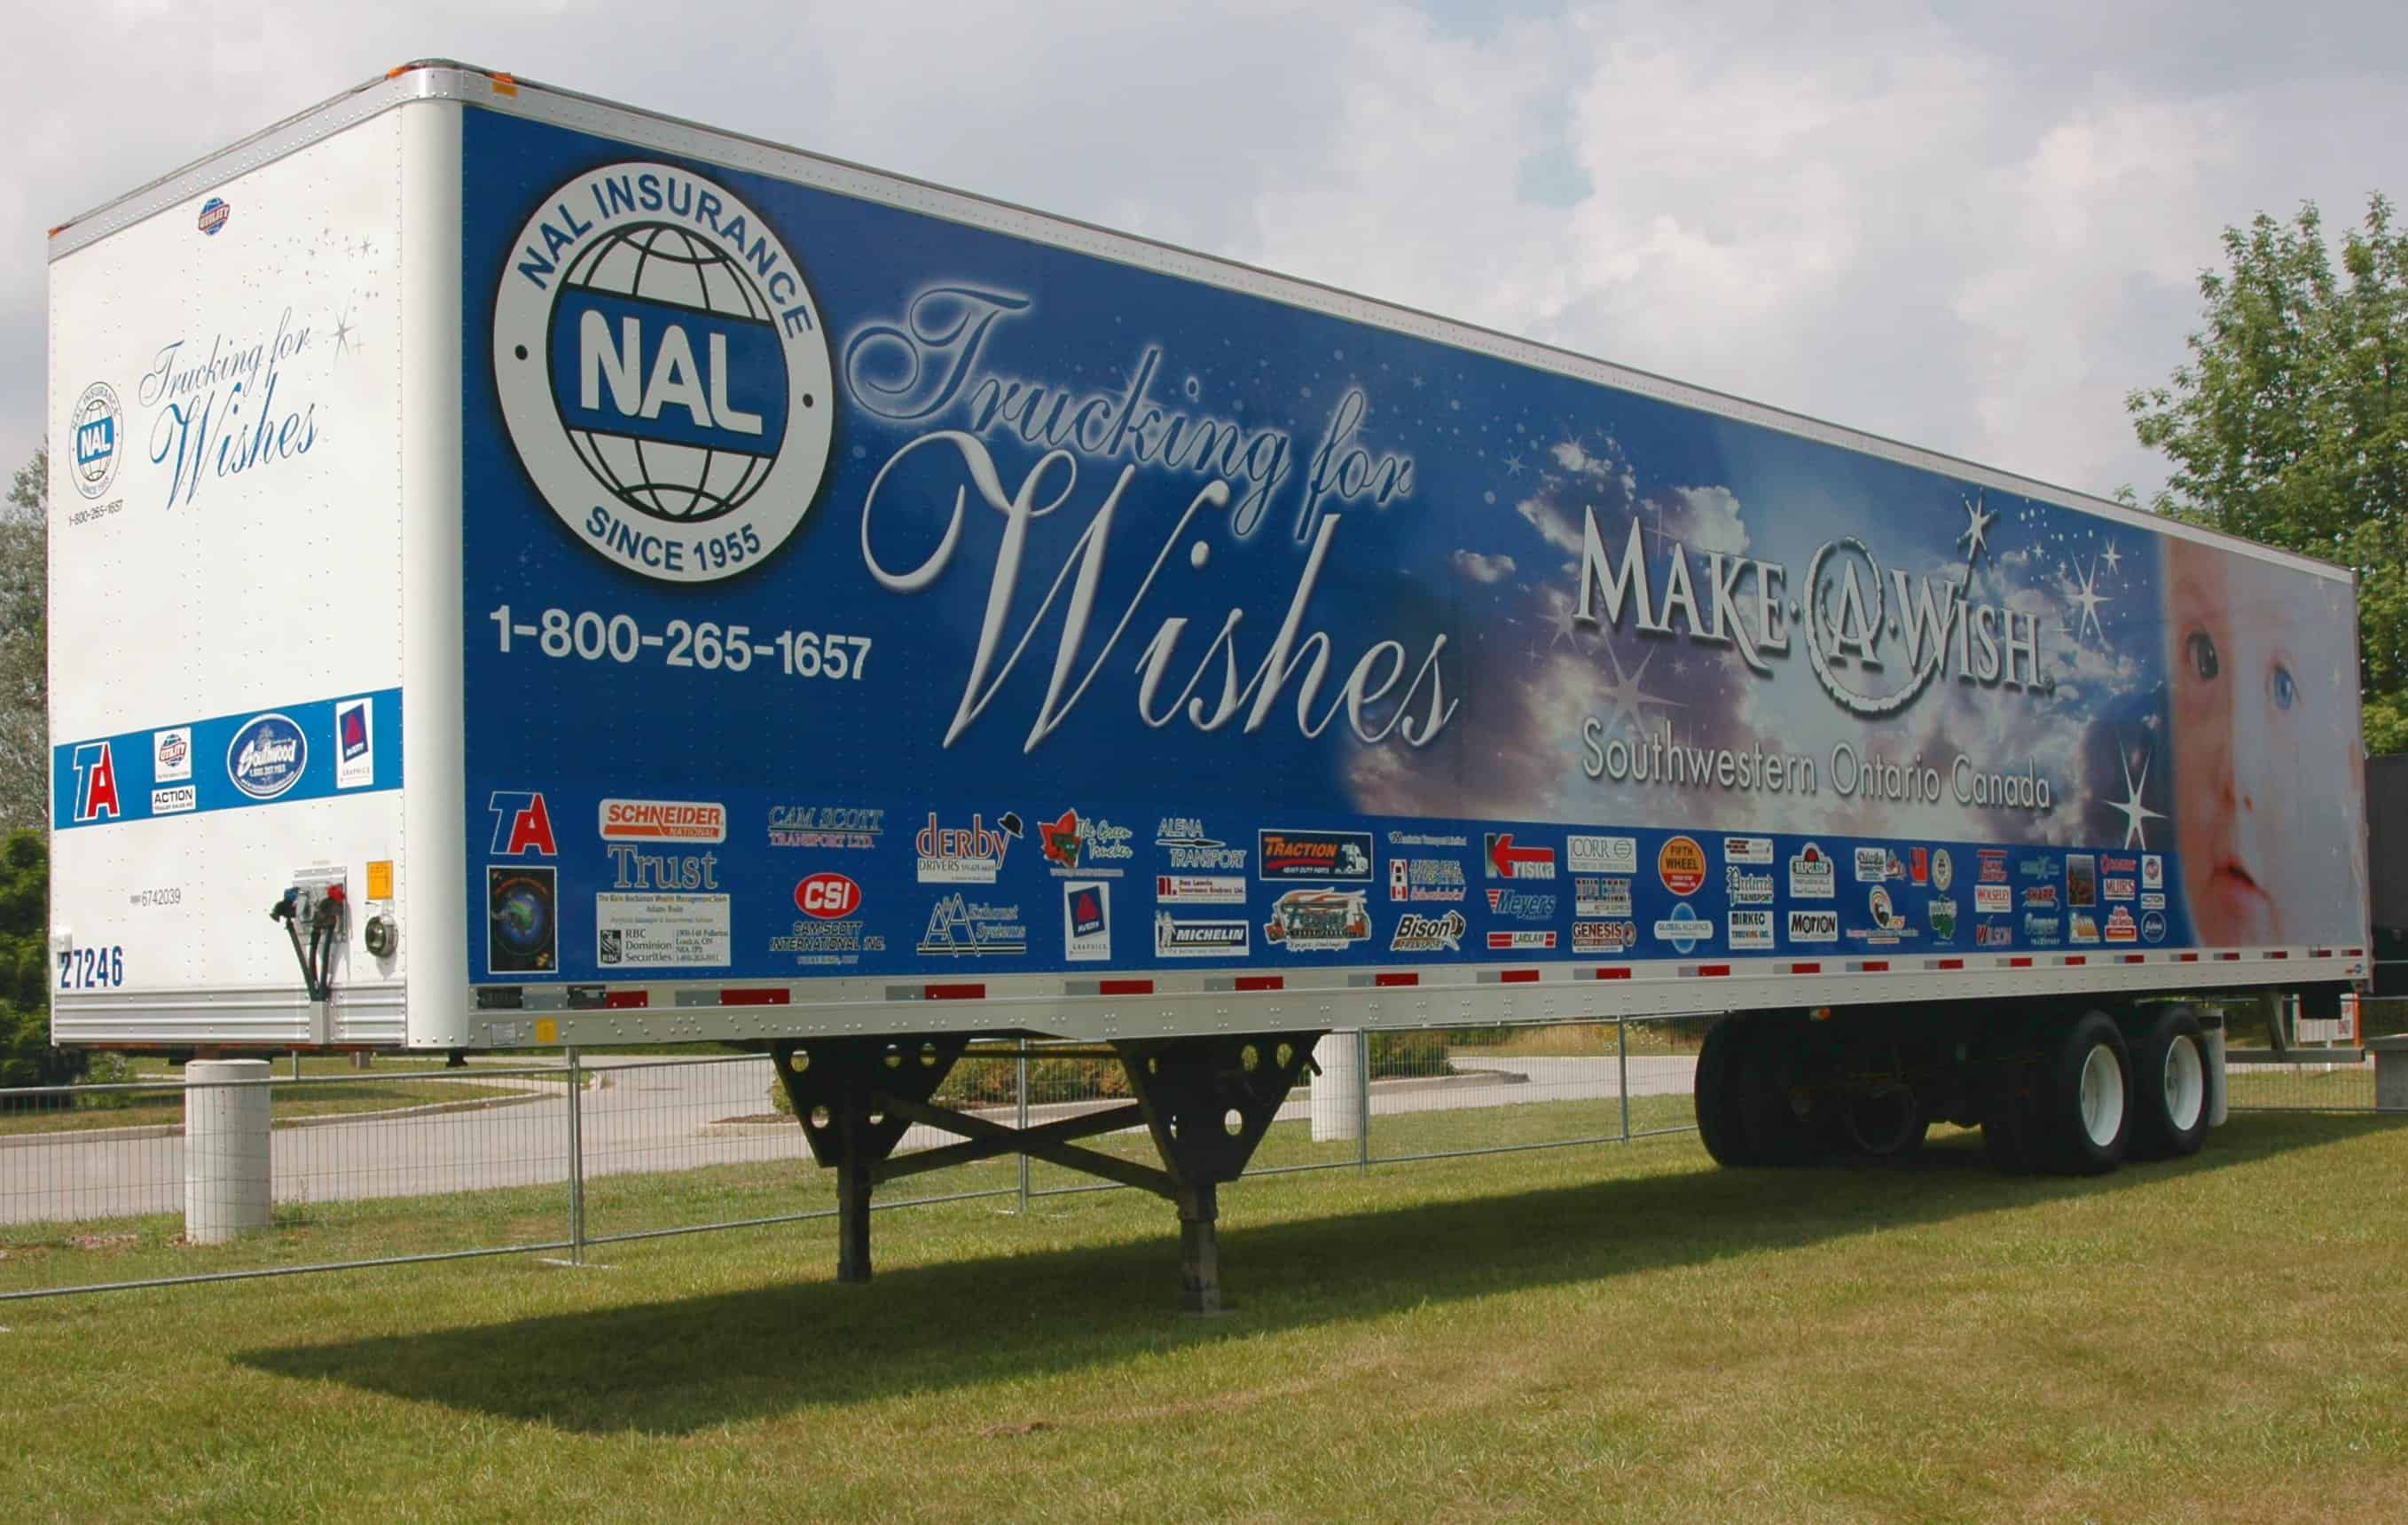 Trucking for Wishes Trailer